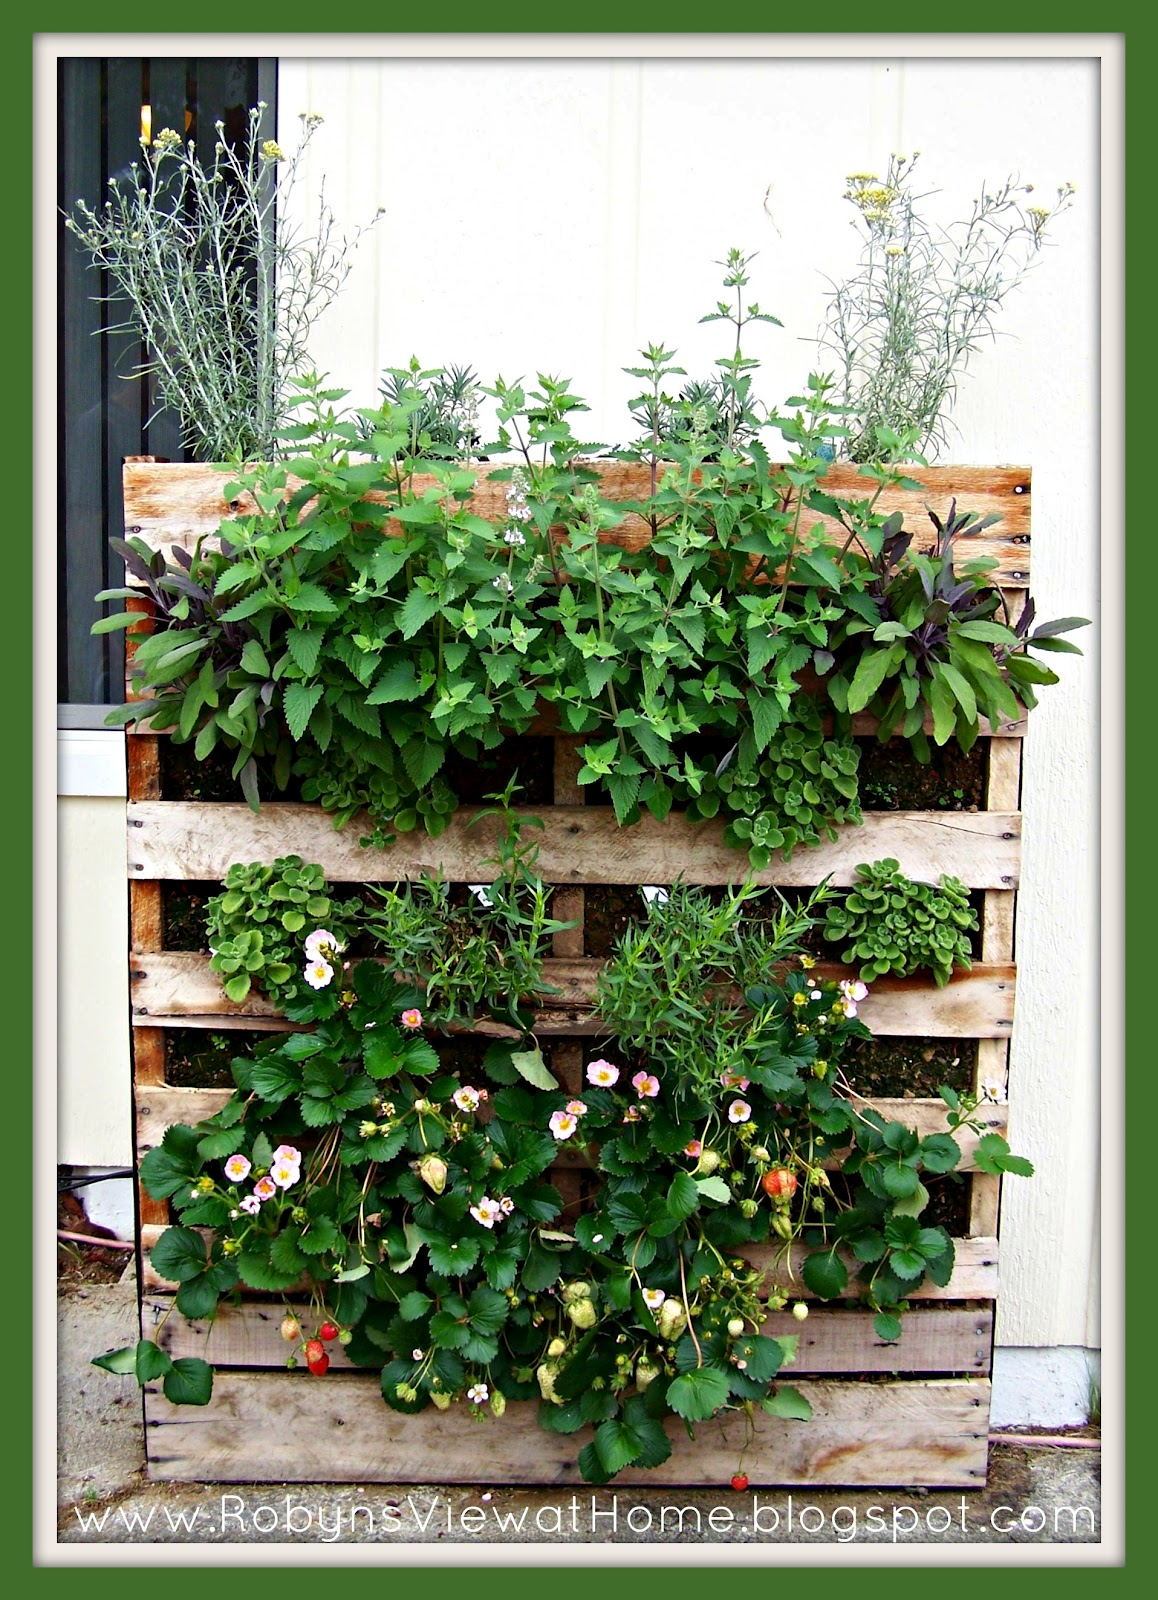 How Does Your Garden Grow Plus How to Make a Pallet Garden